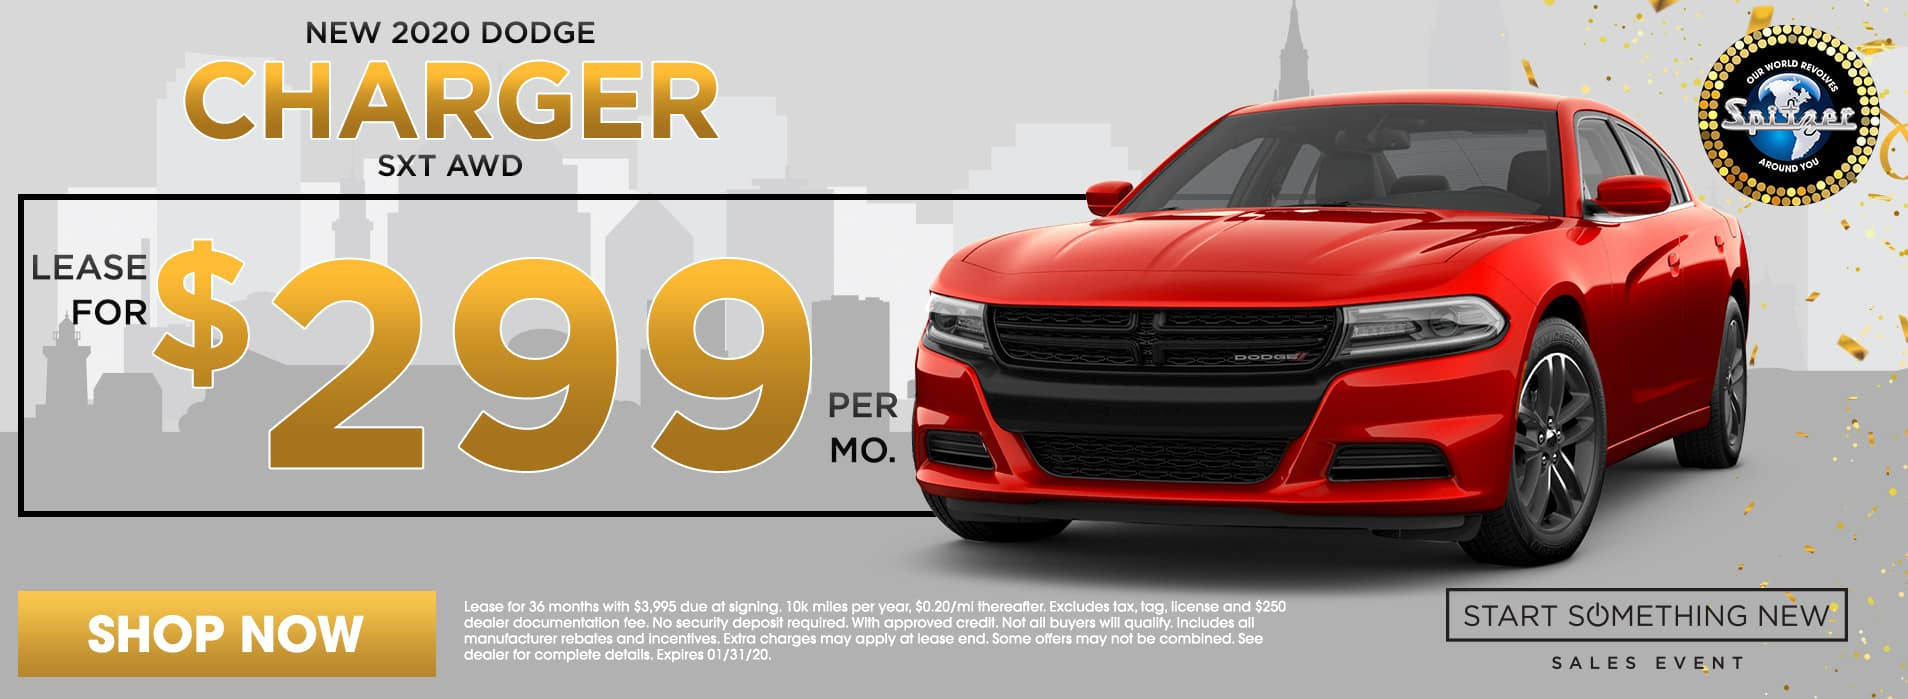 Charger | Lease for $299 per mo